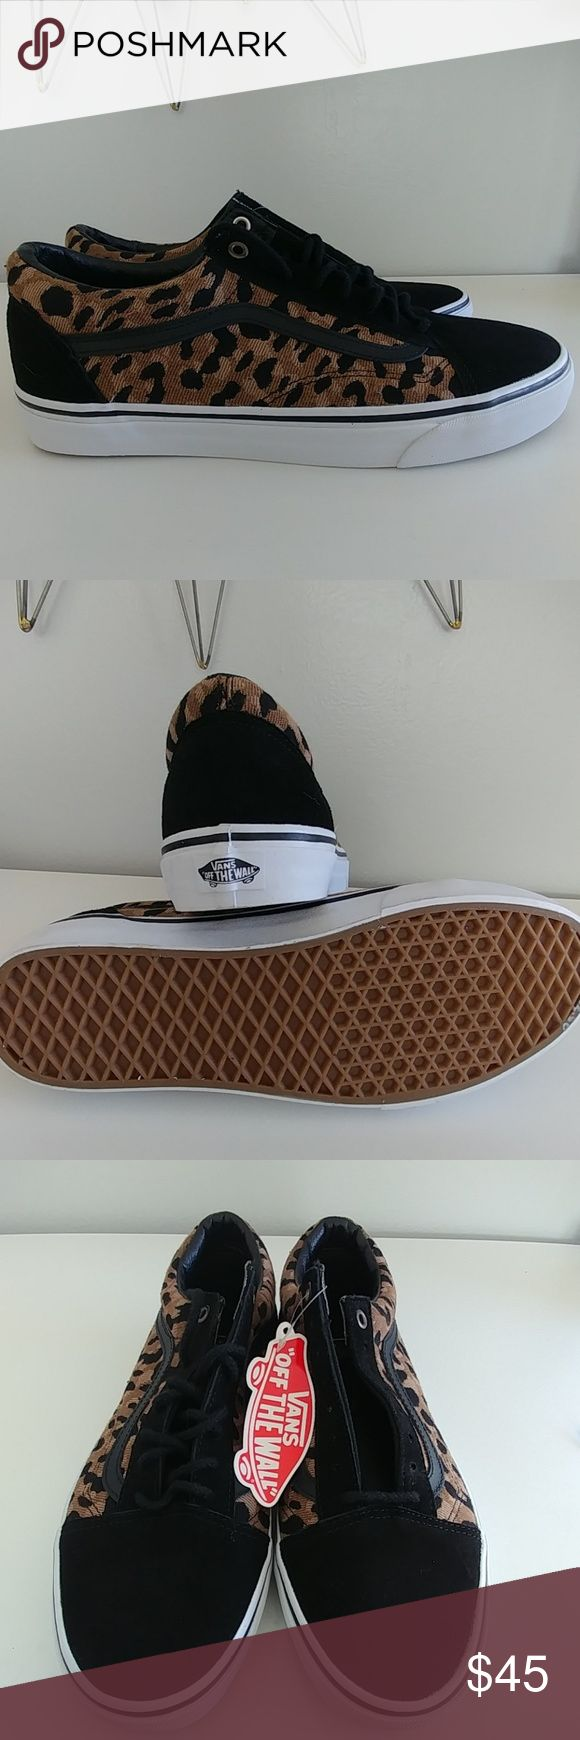 Vans Old Skool Skate Leopard Vans Old Skool Authentic Skate Leopard Shoes. New no box. May have an unnoticeable scuff or 2 from not being in a box. Sweet shoes. Priced to sell. Vans Shoes Athletic Shoes